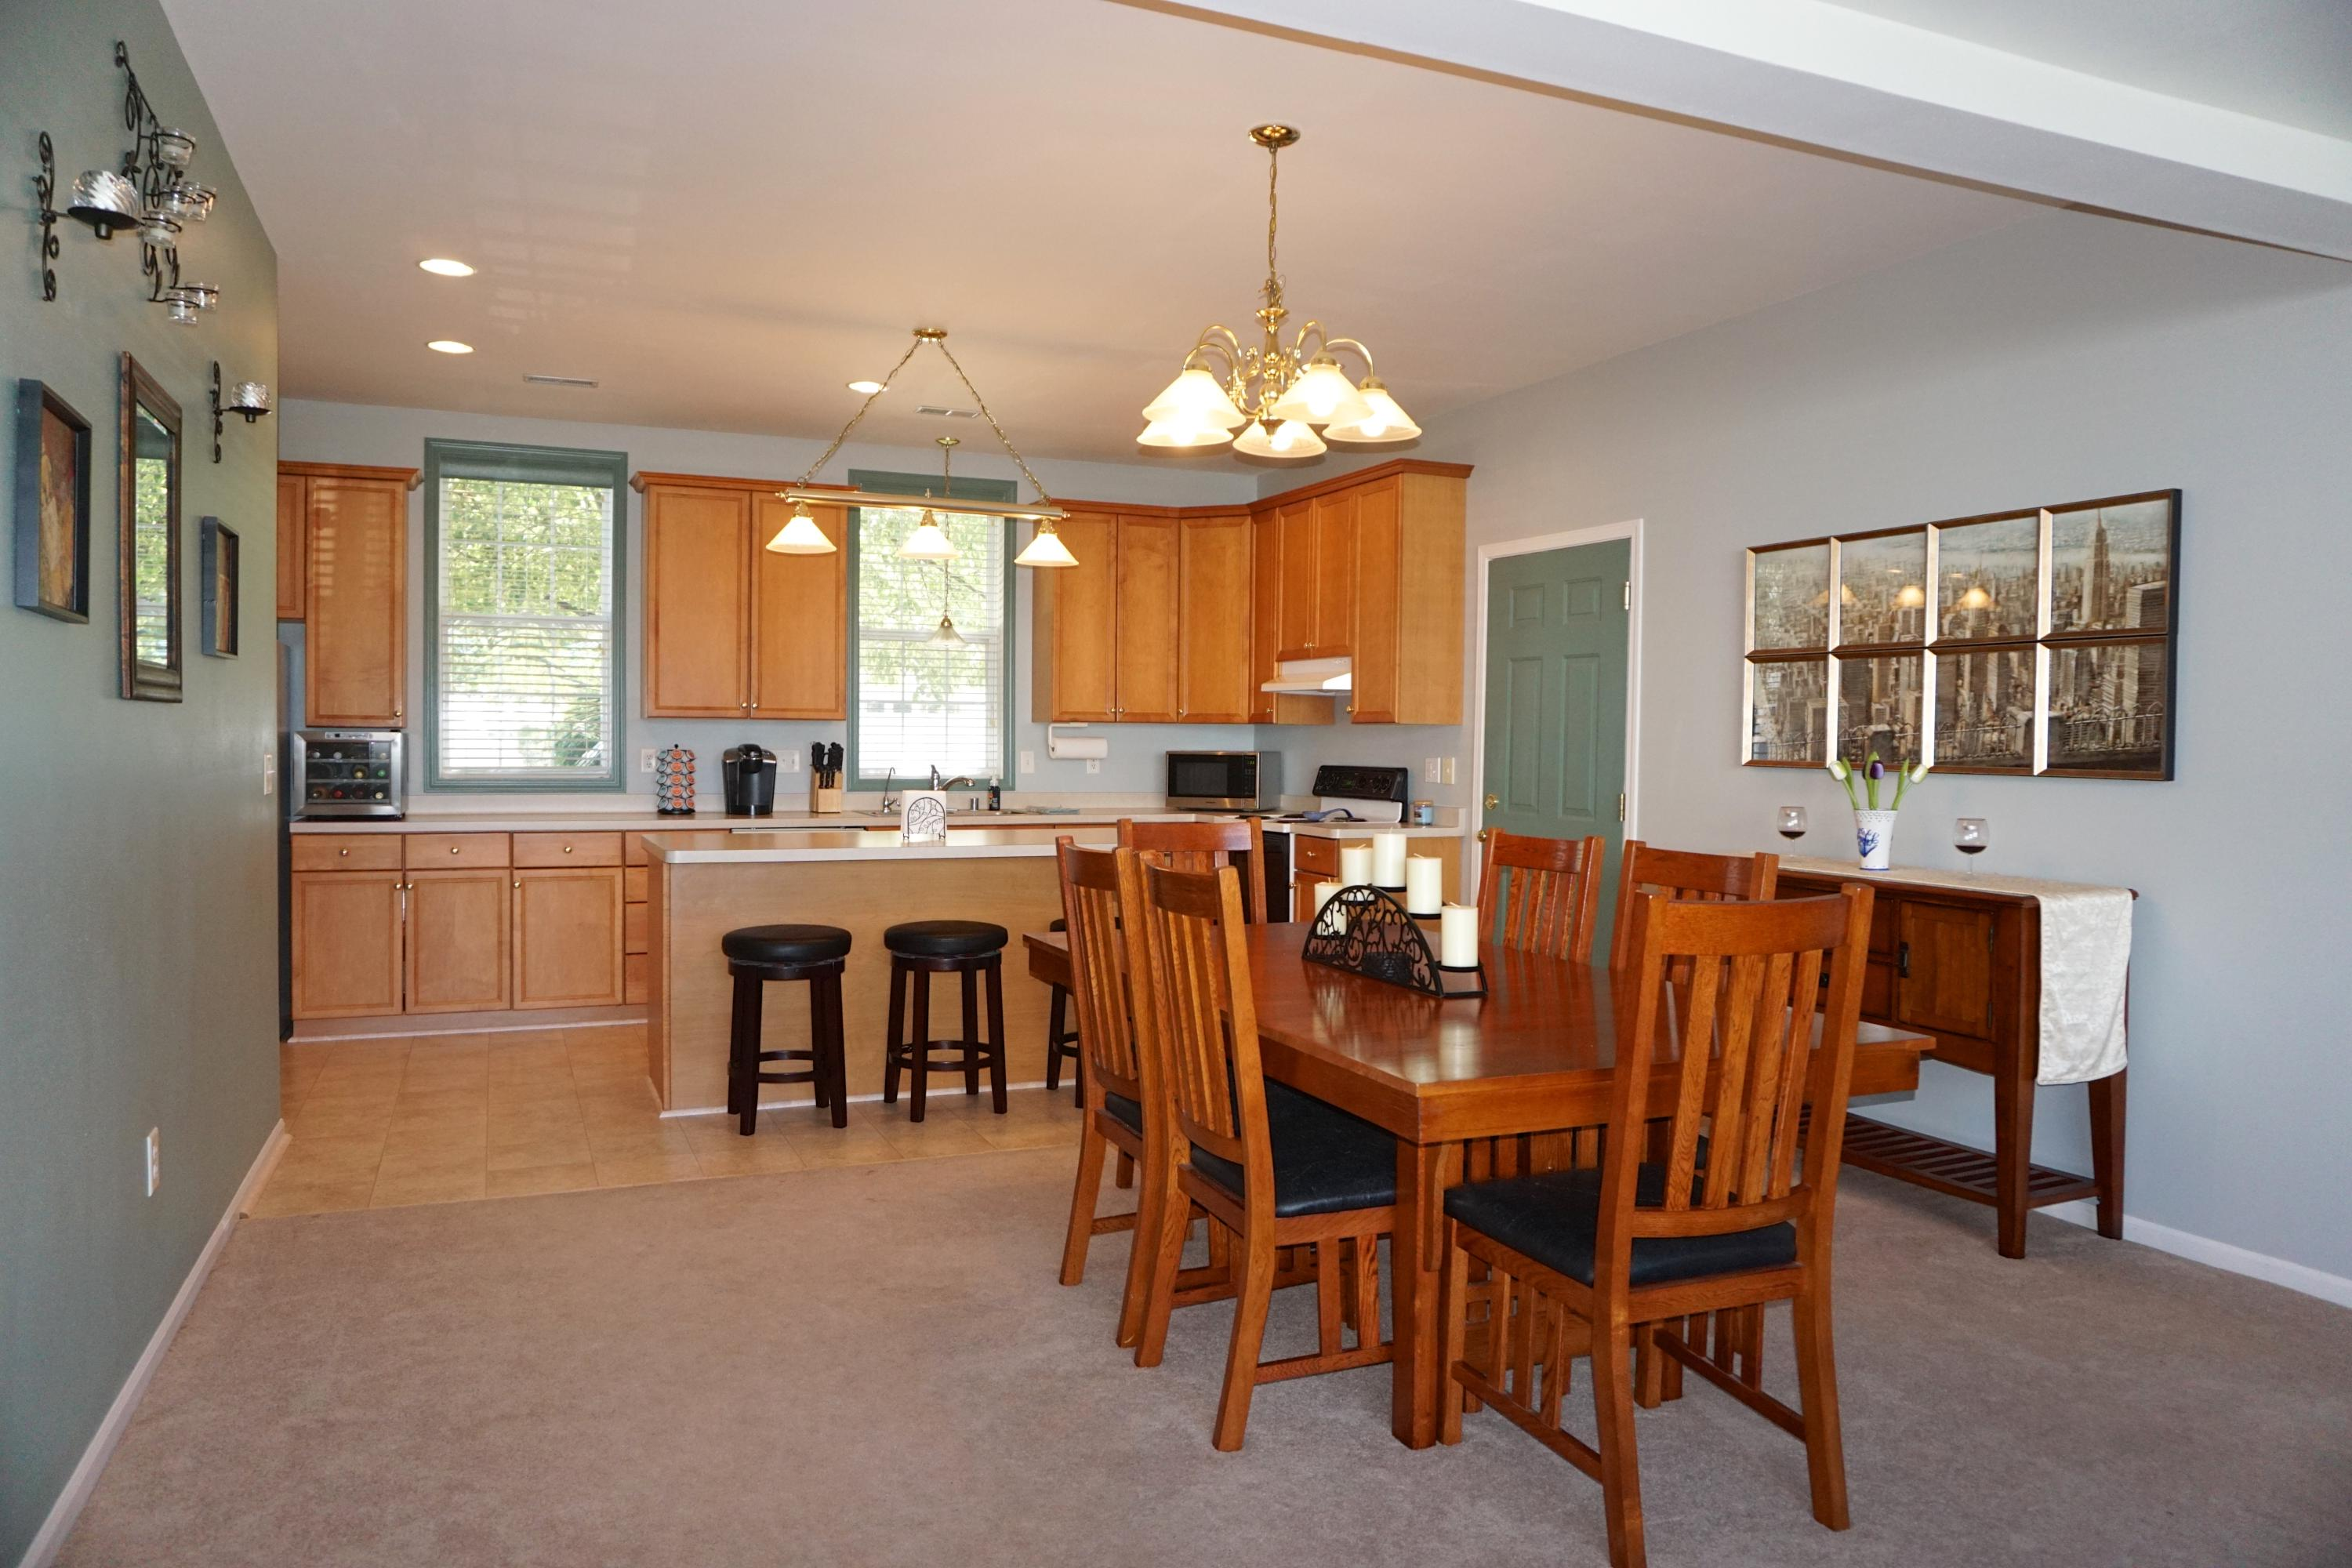 2100 Woodbury Cir, Waukesha, Wisconsin 53189, 2 Bedrooms Bedrooms, ,2 BathroomsBathrooms,Condominiums,For Sale,Woodbury Cir,1,1593273